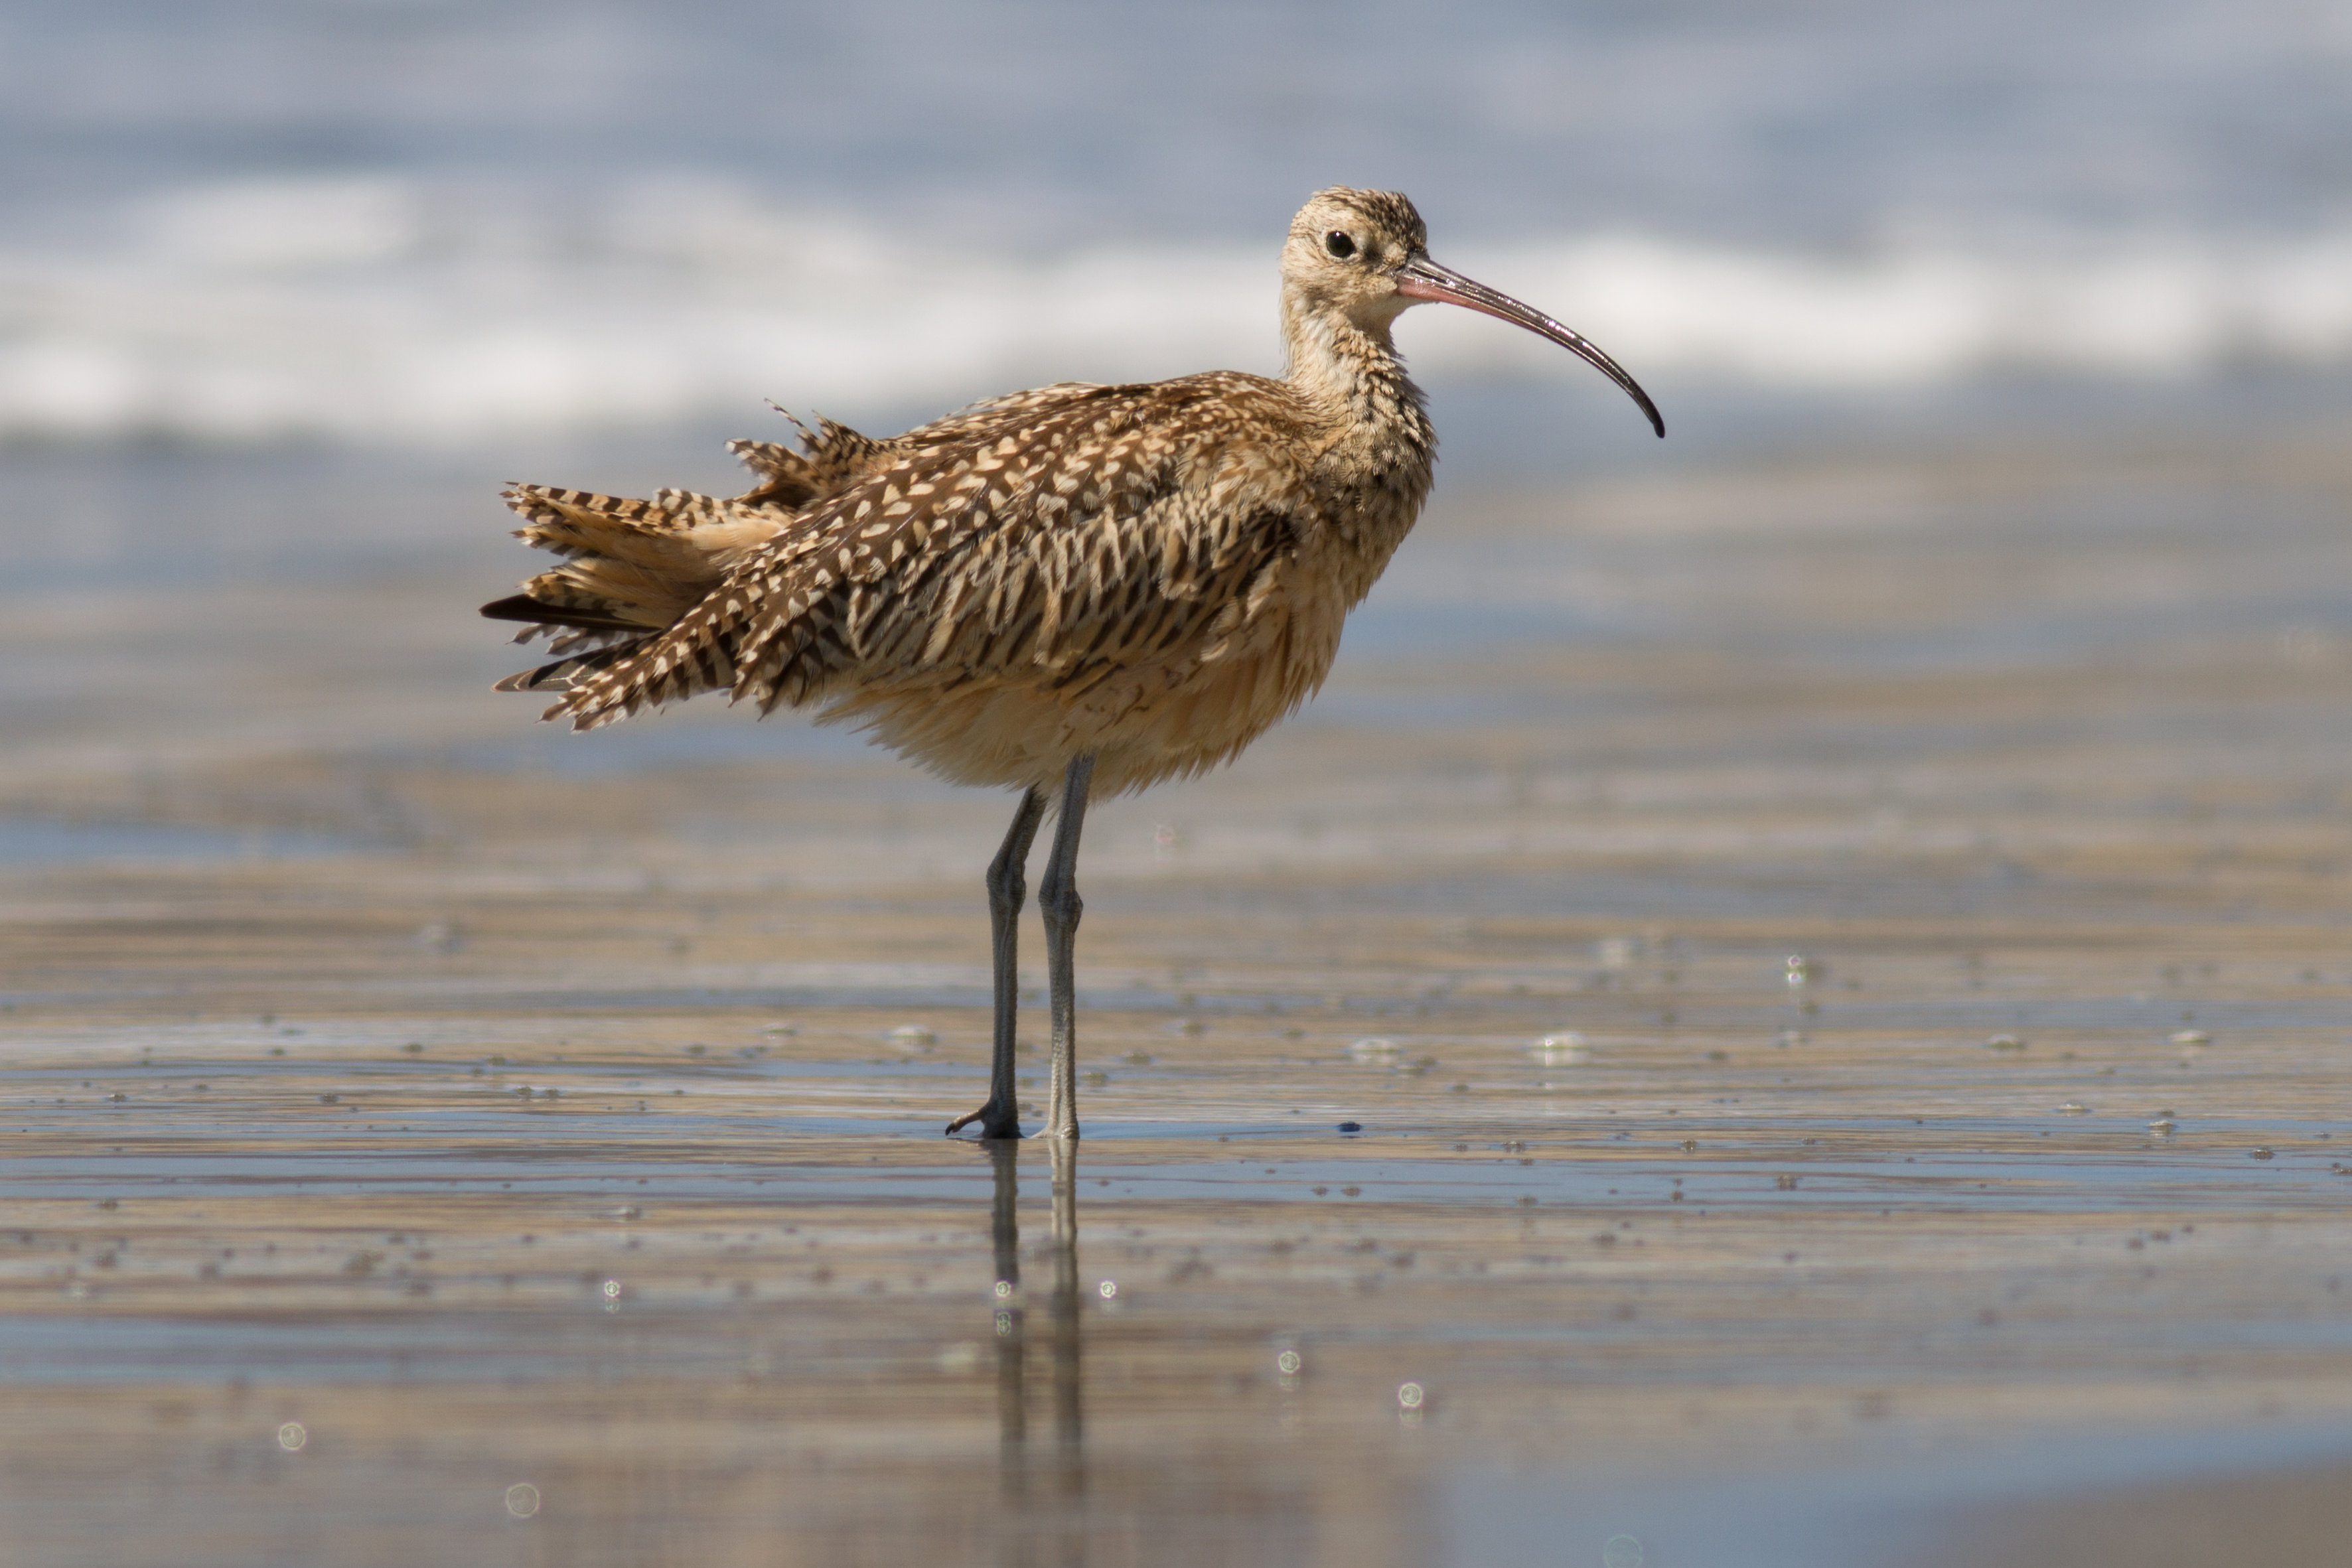 File:Long-billed curlew at Drakes Beach, Point Reyes.jpg ...